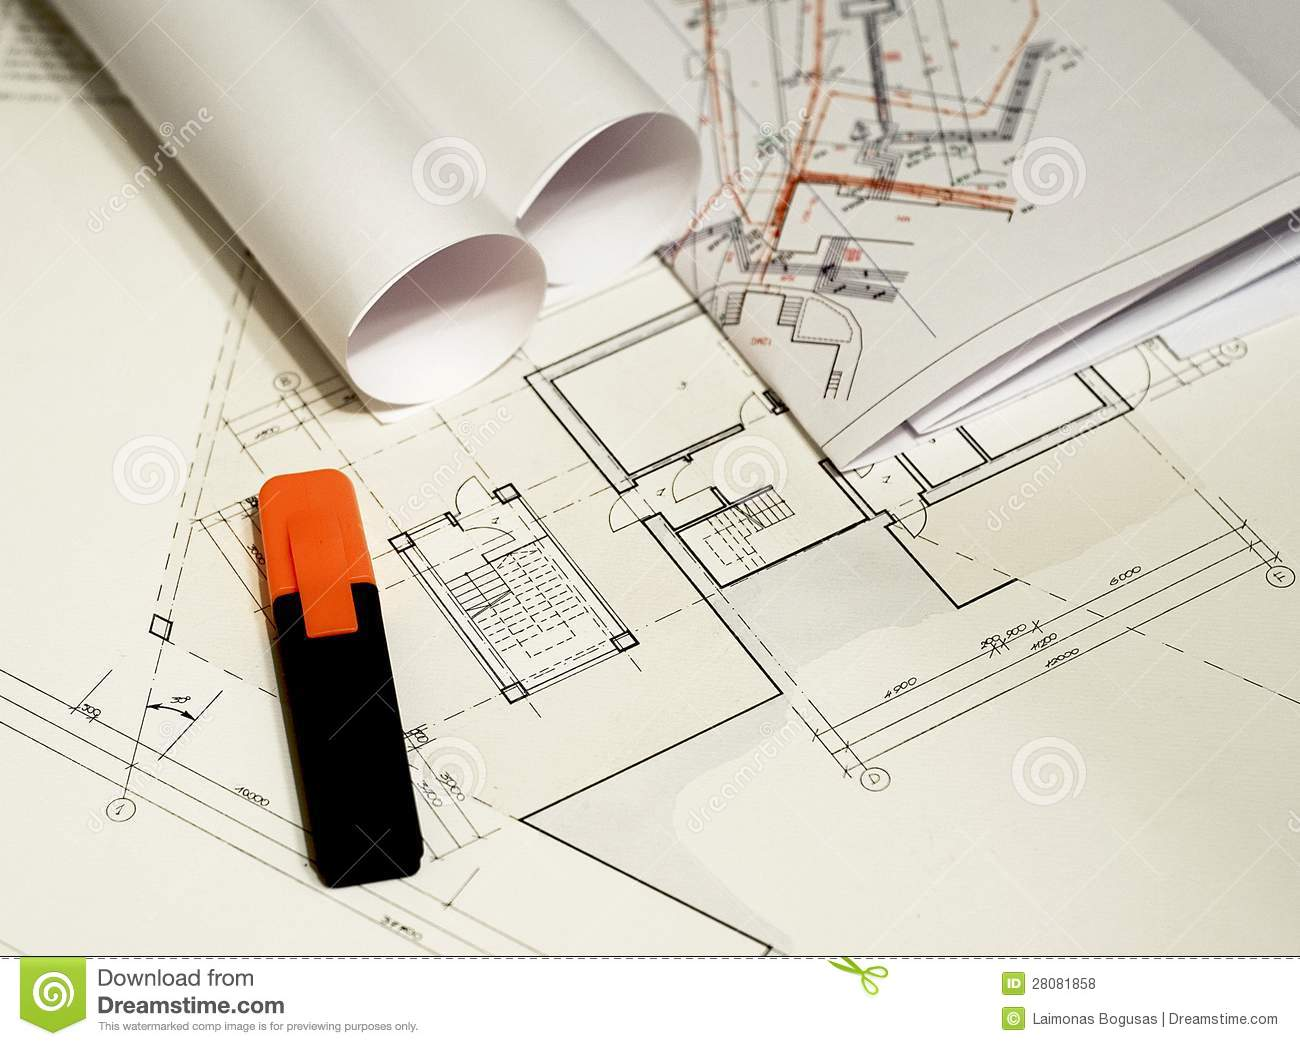 Architectural drawings, blueprints, city planning